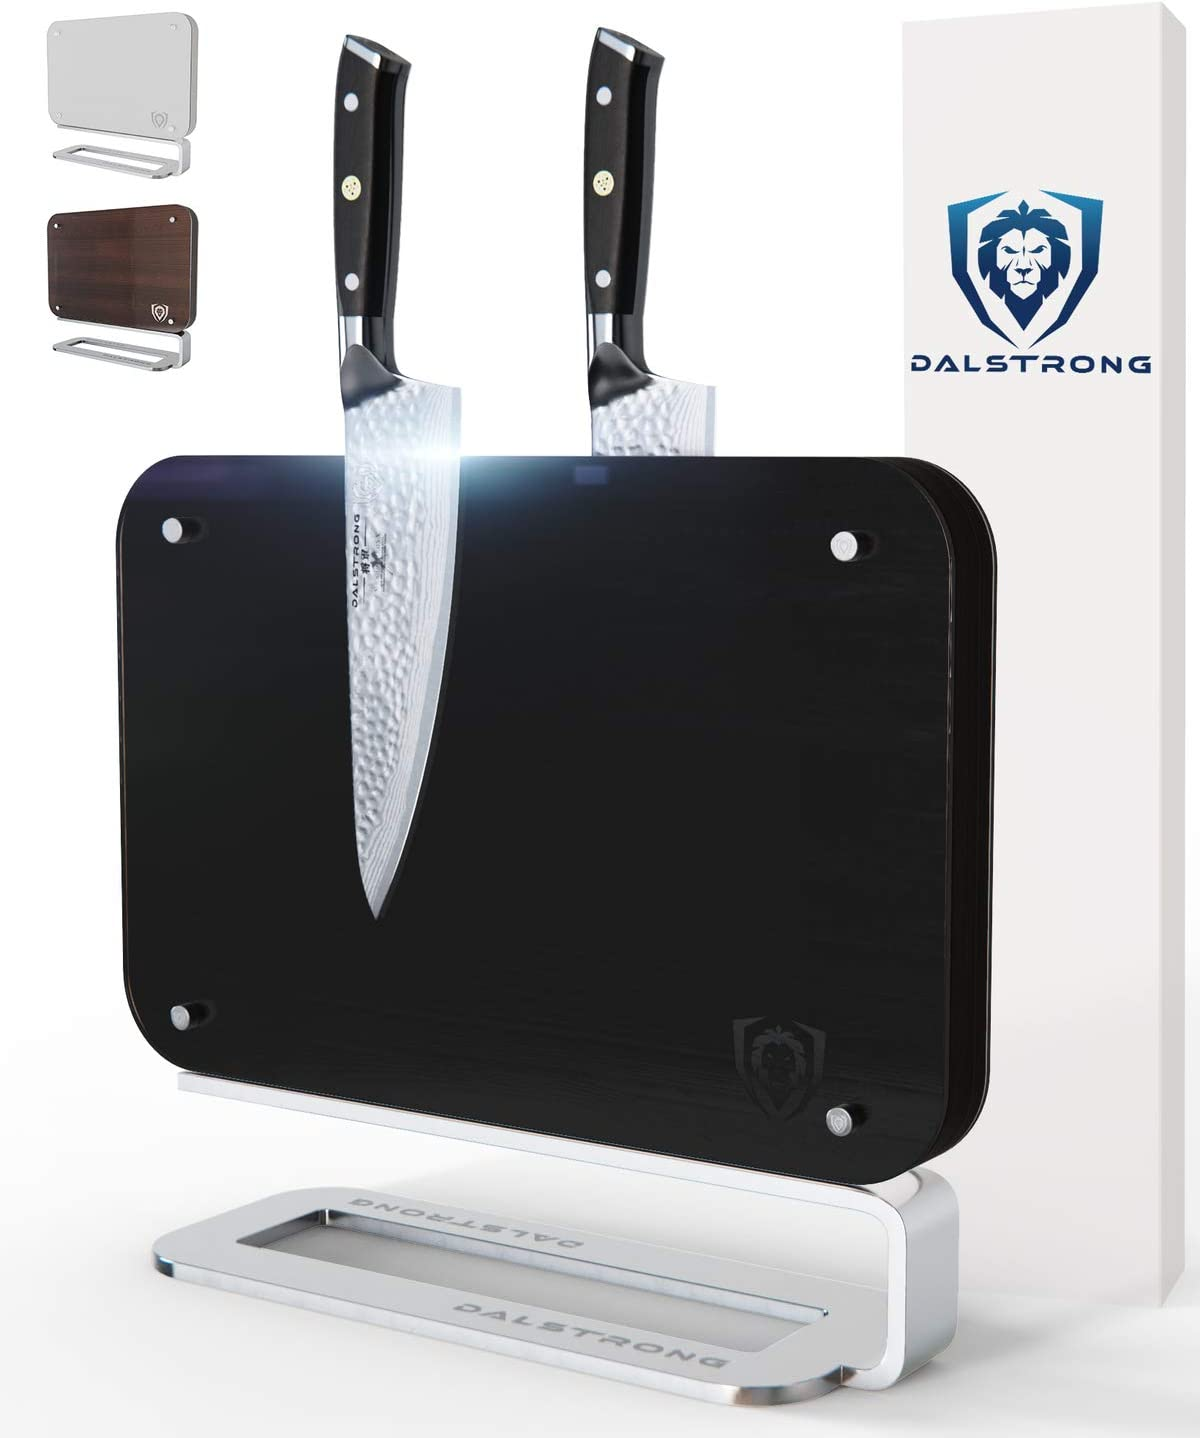 Dalstrong - Magnetic Blade Wall - Doubled Sided - Compact Knife Storage & Display Stand- Acacia Wood - 14.5 x 11.7 (Vader Black)